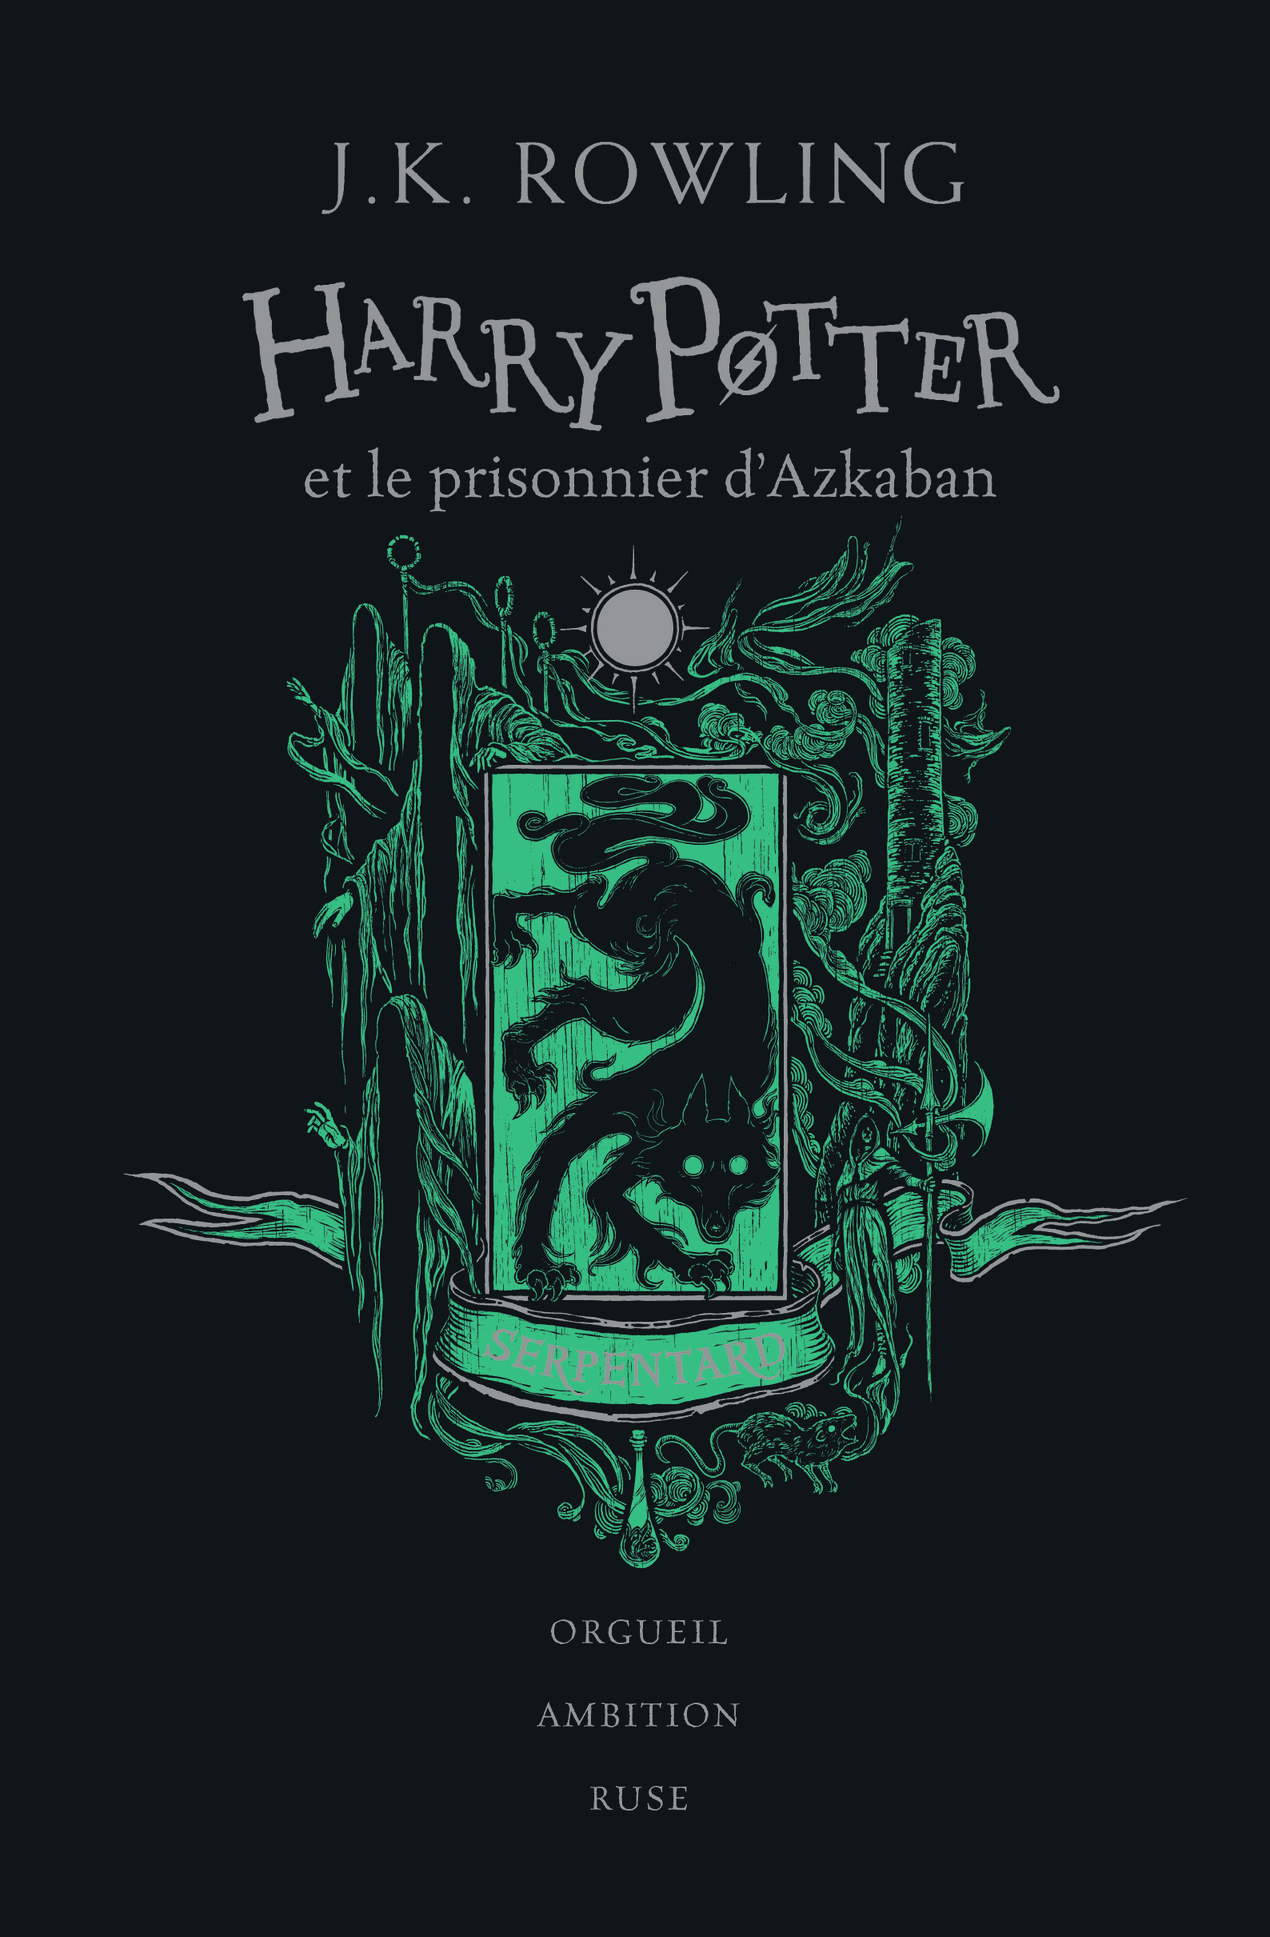 HARRY POTTER ET LE PRISONNIER D'AZKABAN - SERPENTARD